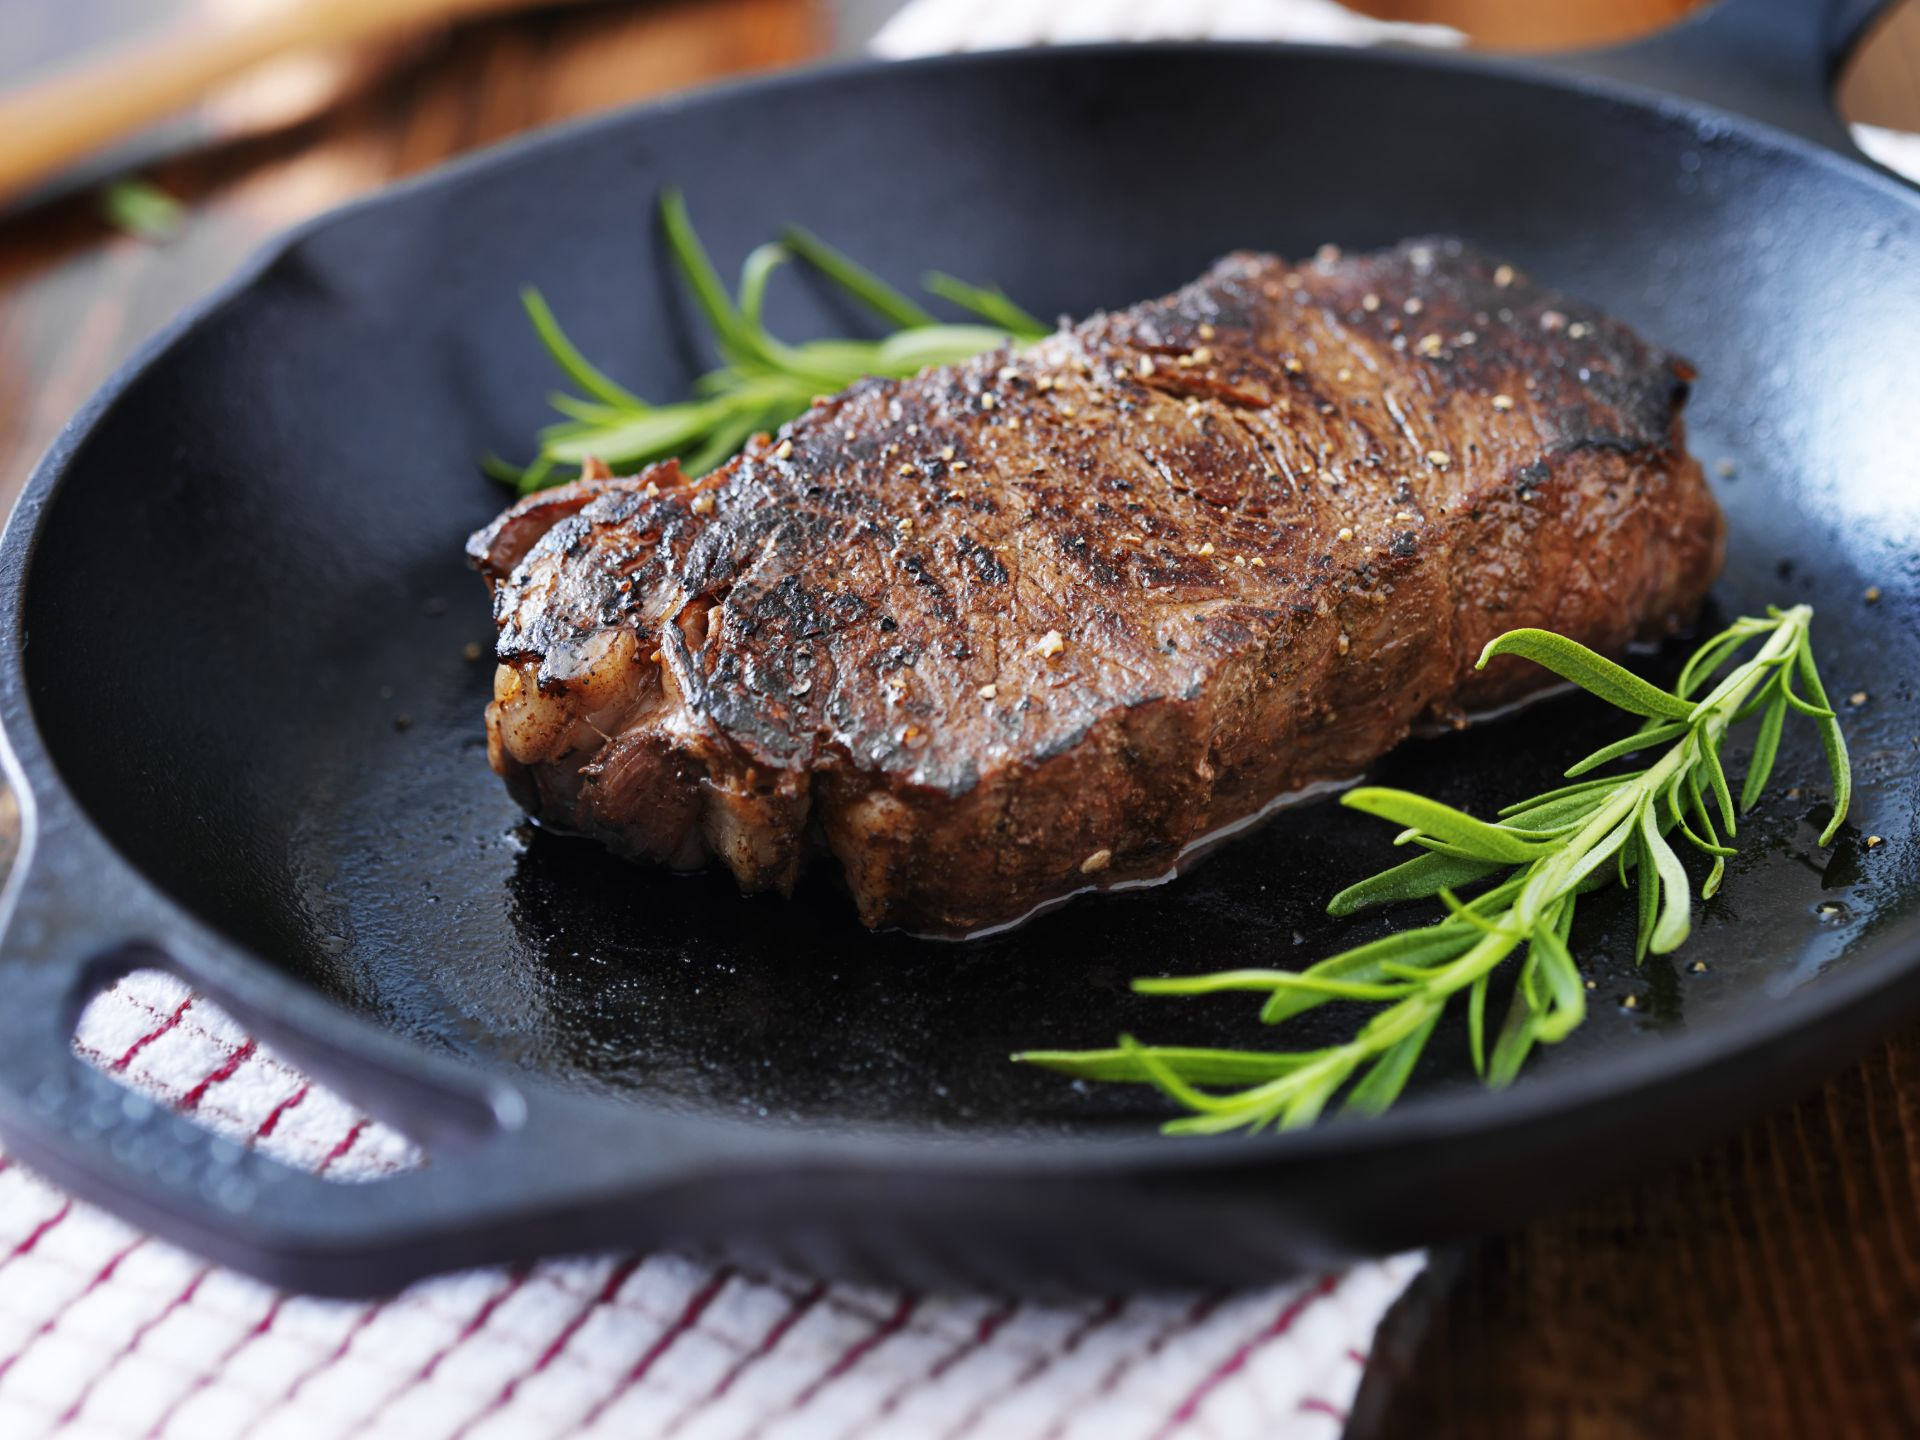 steak on a pan with rosemary